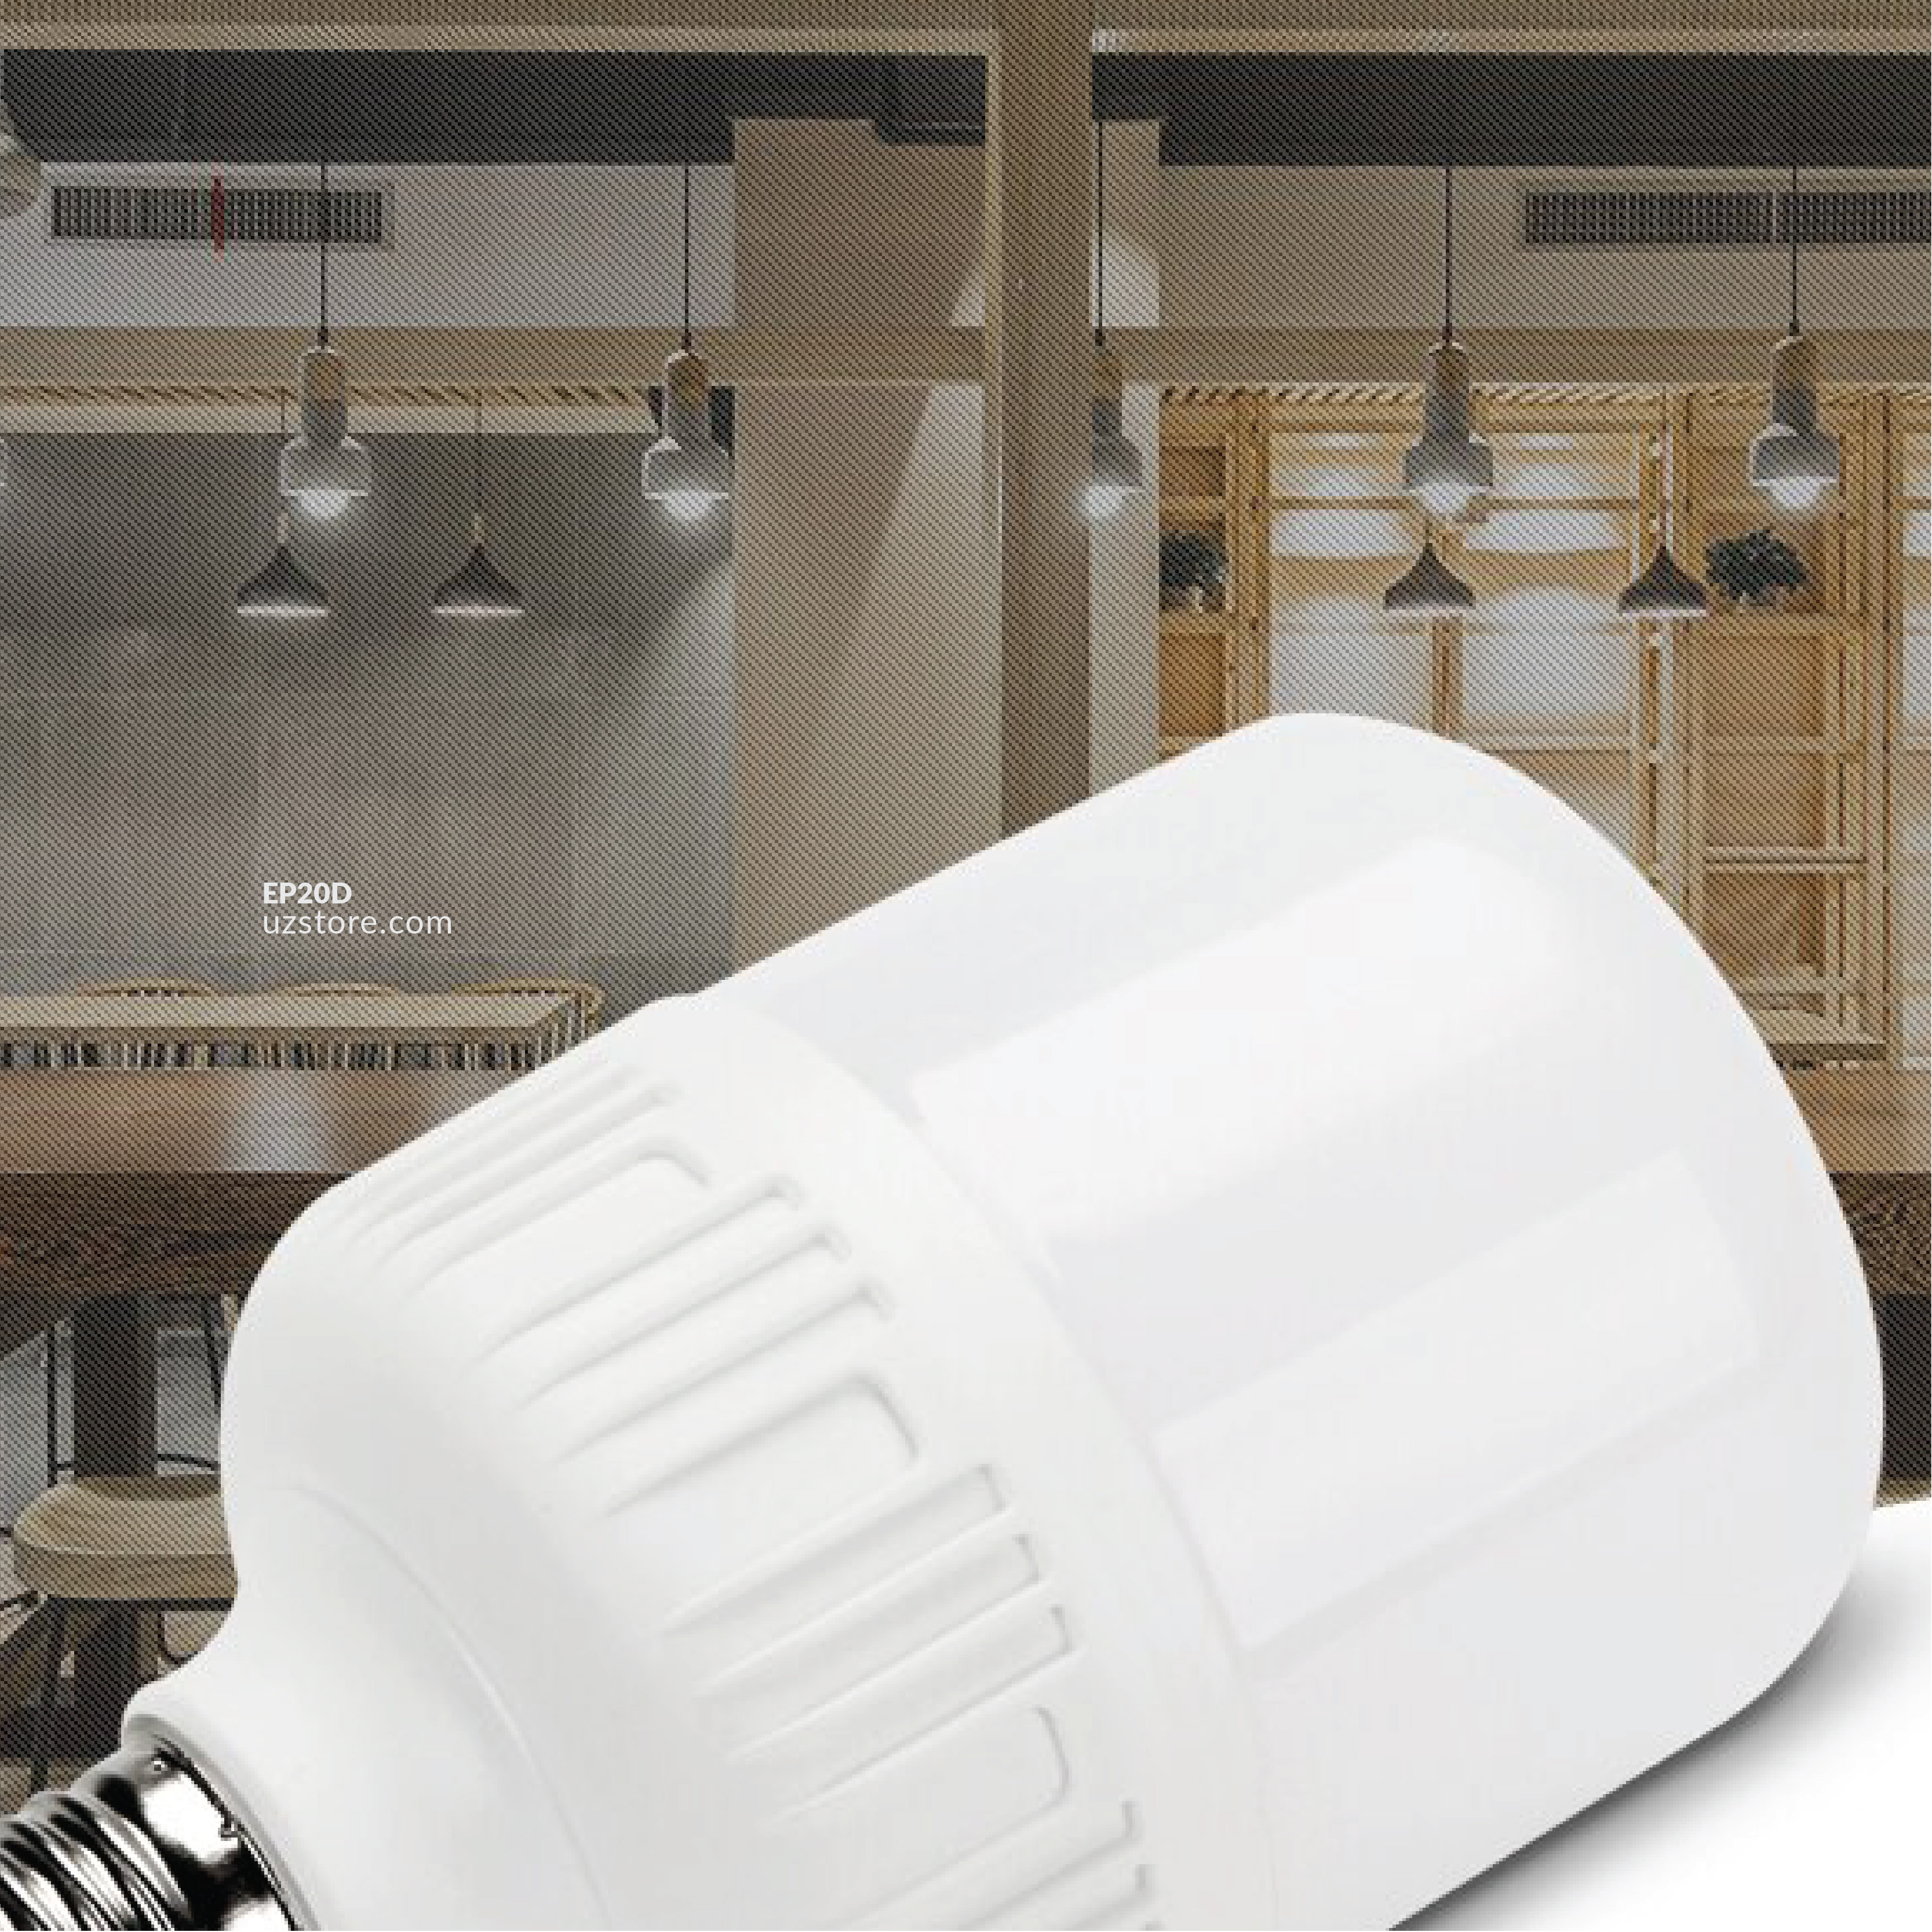 OPPLE LED Lamp20W Daylight E27